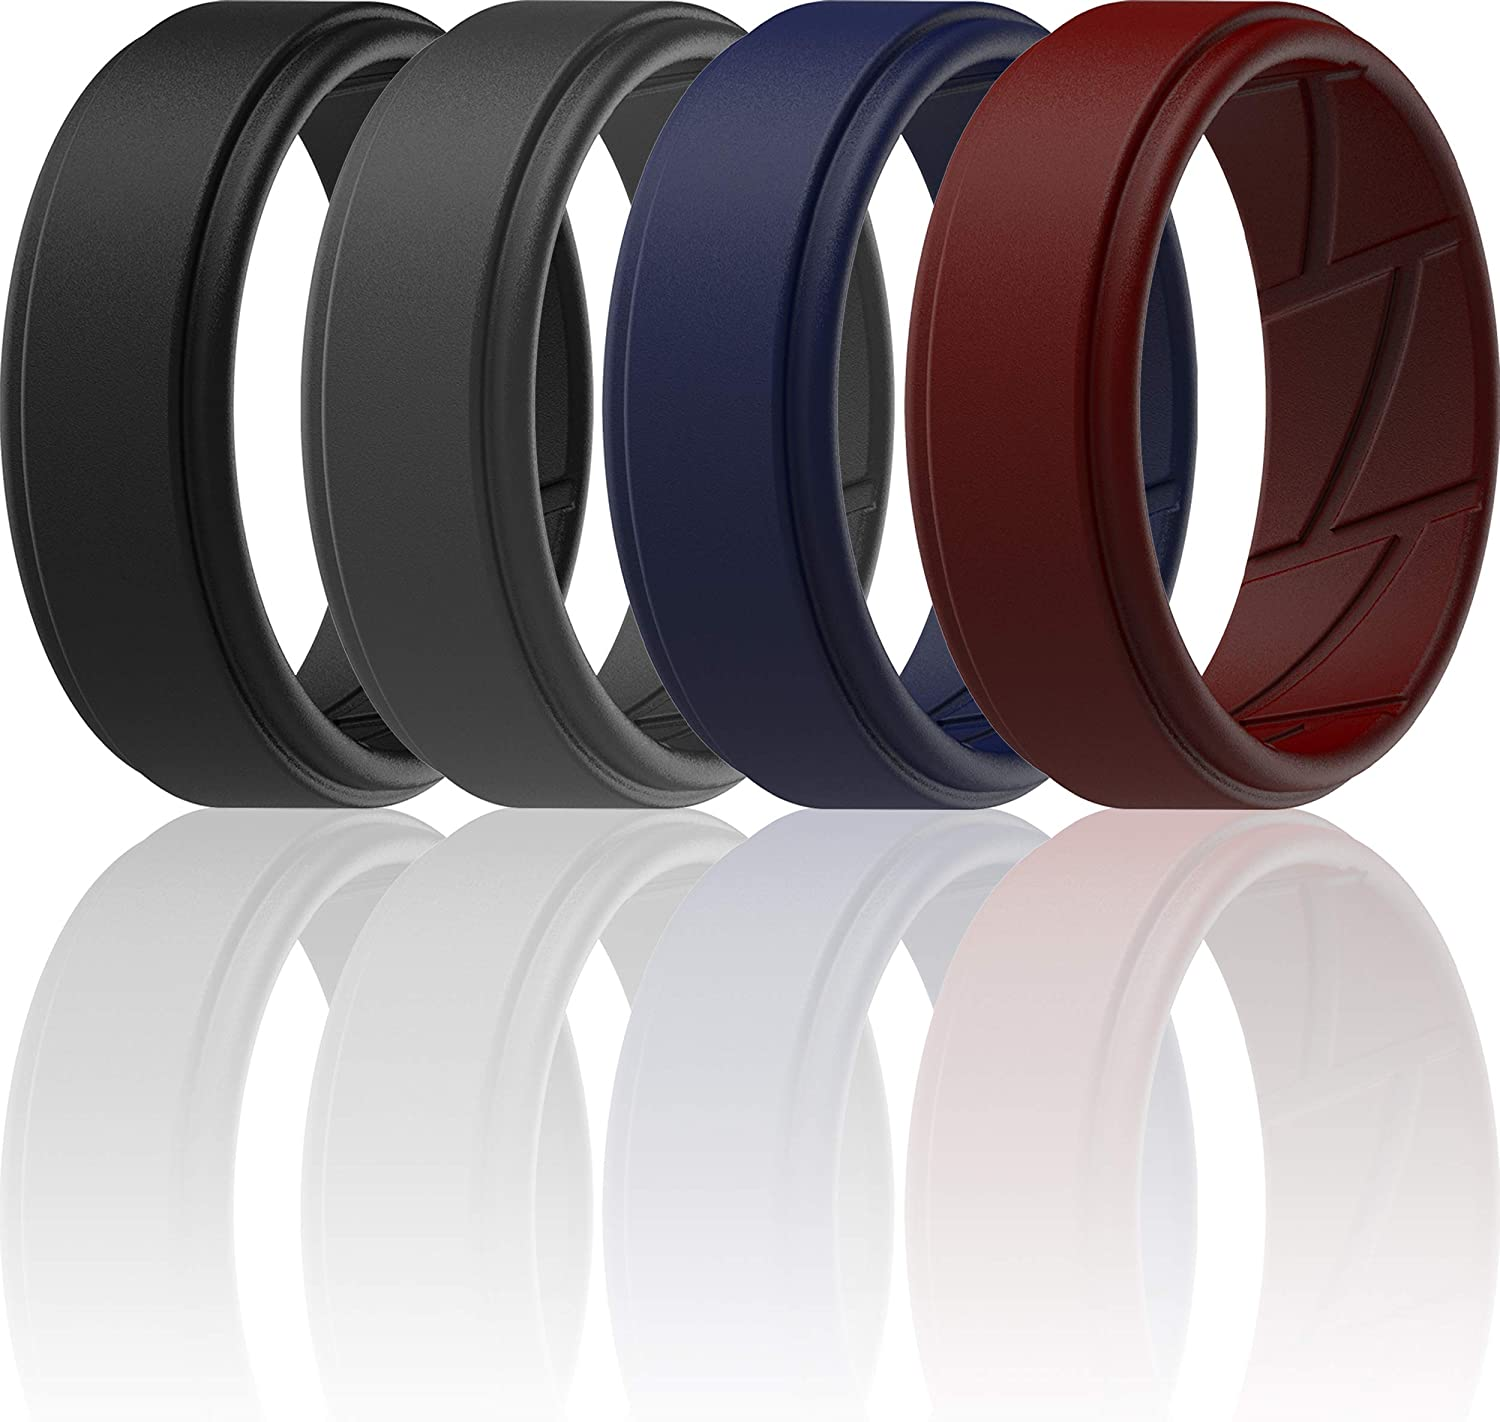 2mm Thick 7 Rings // 4 Rings // 1 Ring Step Edge Sleek Design Breathable Rubber Engagement Bands ThunderFit Silicone Wedding Rings for Men Breathable Airflow Inner Grooves 8mm wide